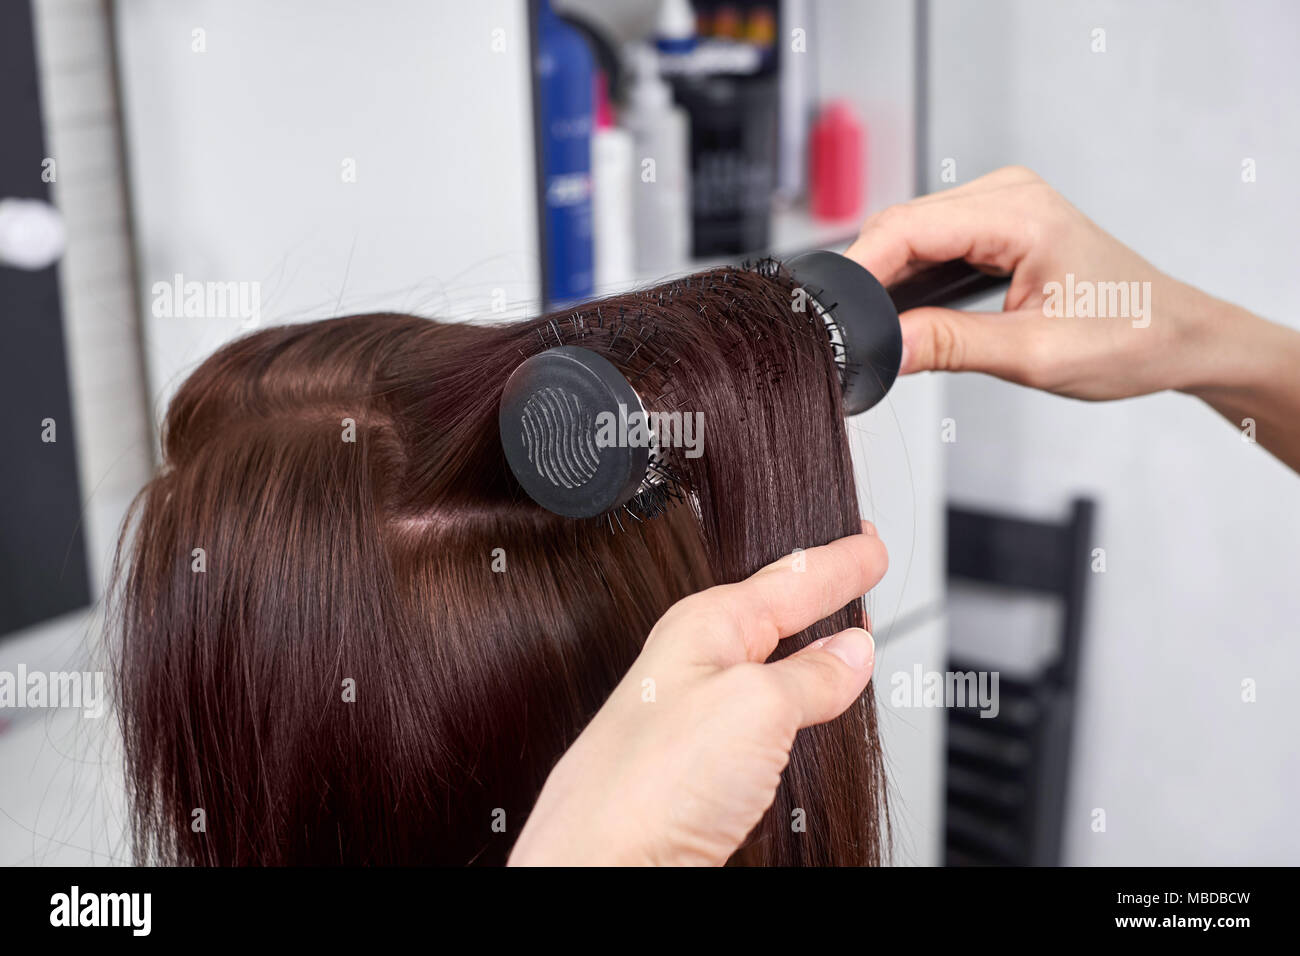 Closeup of hair dresser combing client's hair in salon - Stock Image